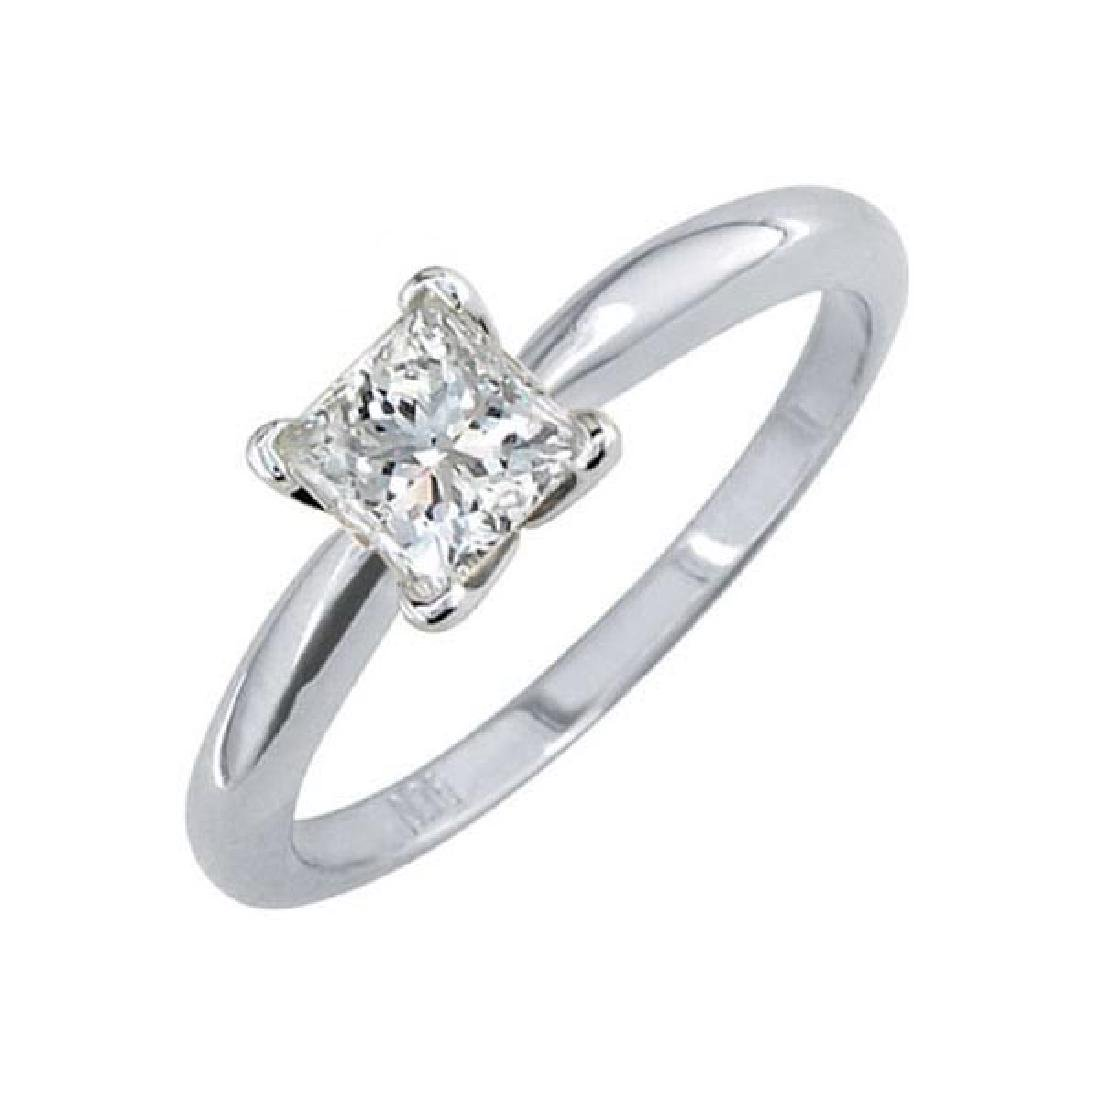 Certified 0.64 CTW Princess Diamond Solitaire 14k Ring